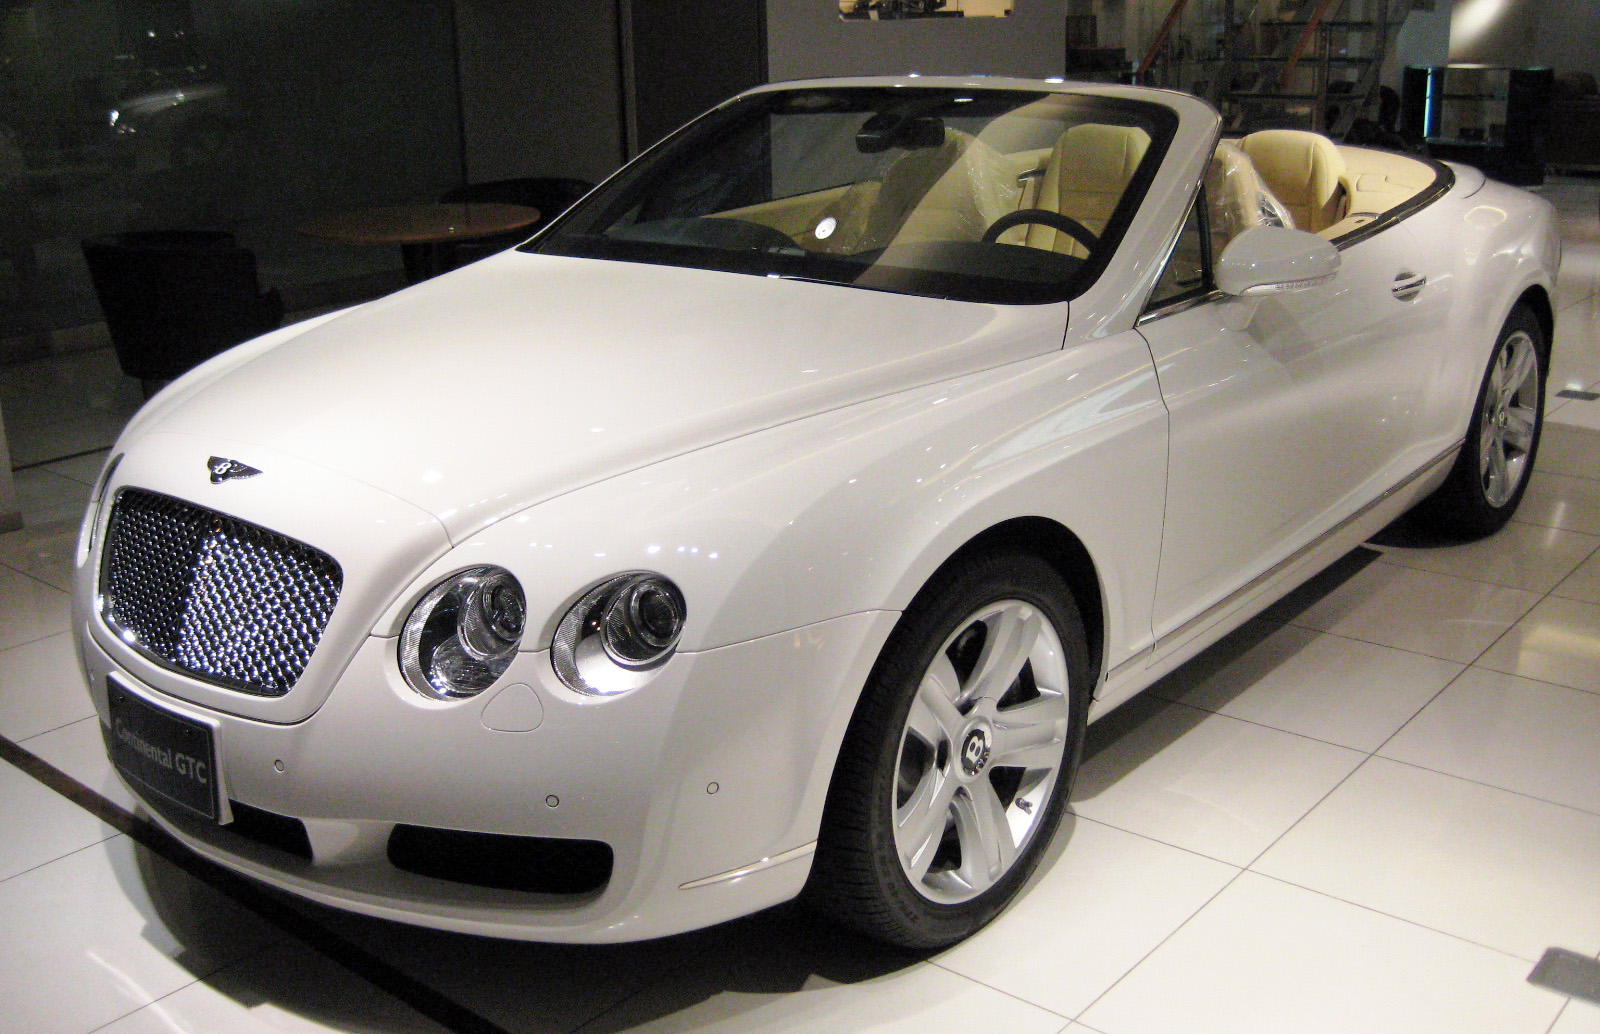 Bentley Continental Gt White in addition 25663767 in addition Ustu Acik Yeni 2013 Opel Cascada H4452 also RepairGuideContent also Civic Del Sol Fuse Panel Printable Copies Fuse Diagrams Here 1966666. on 2012 chrysler sebring coupe